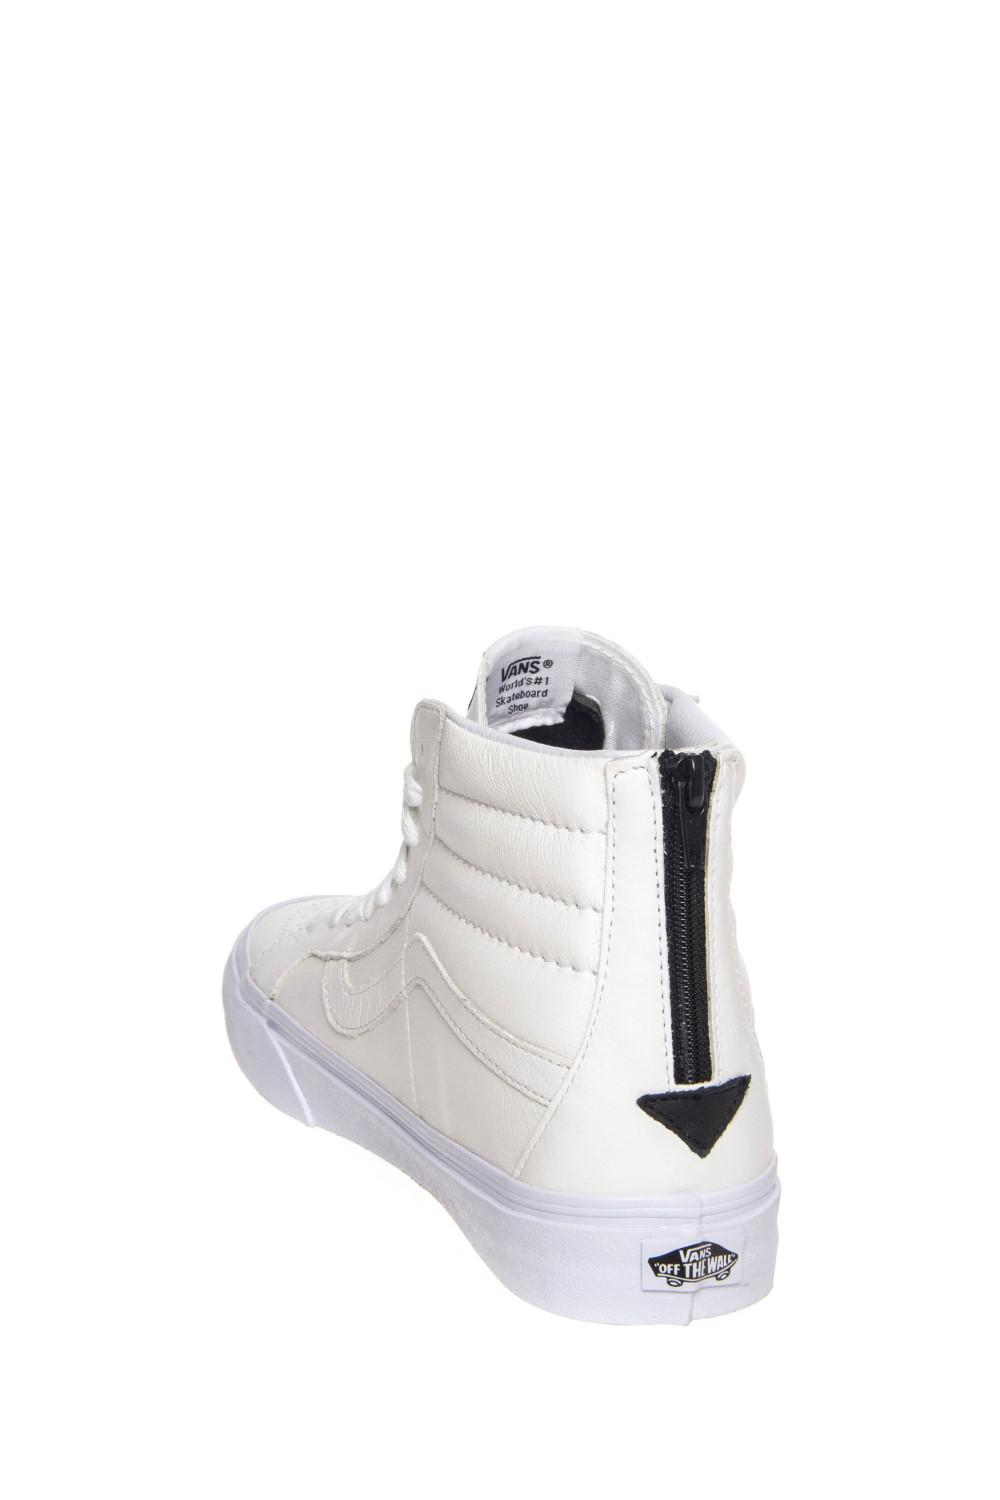 d3fa95c58b Lyst - Vans Sk8-hi Reissue Zip Premium Leather True White   Black ...